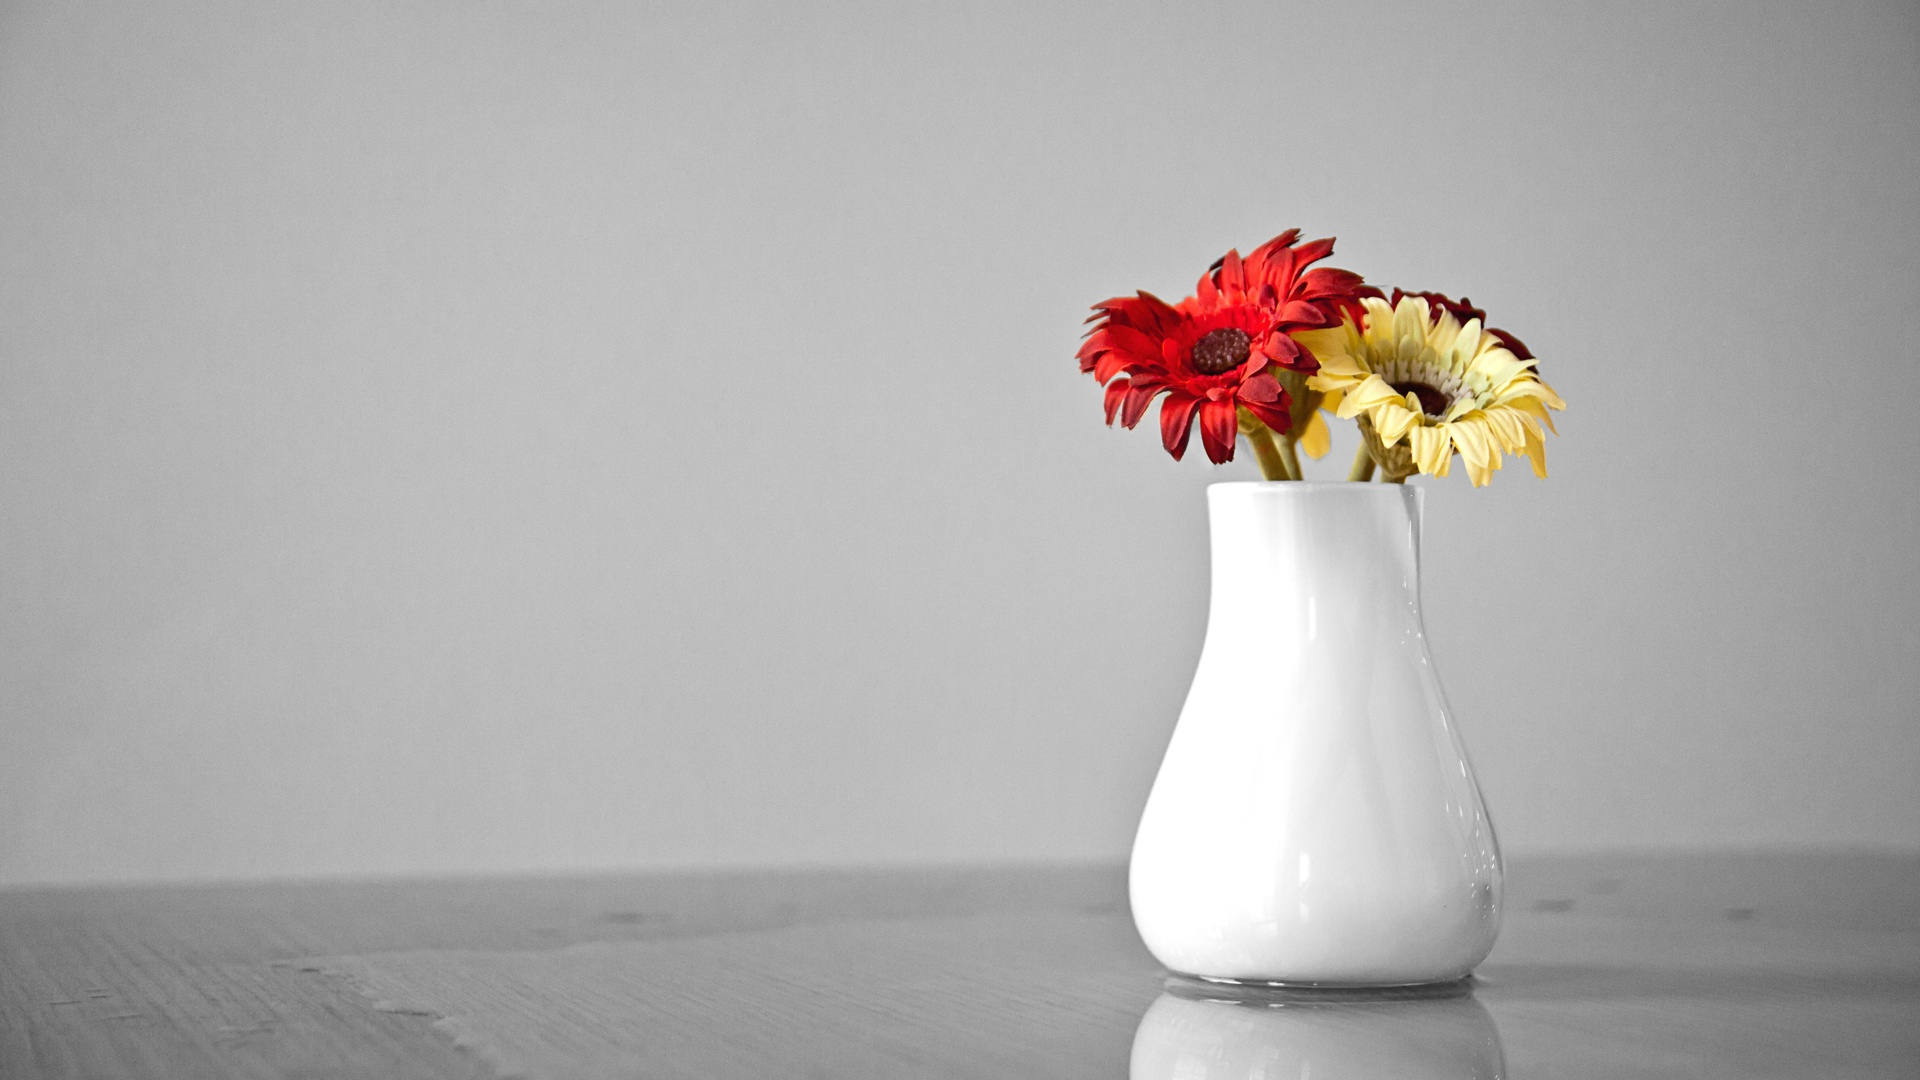 Free Flower Pot Wallpaper